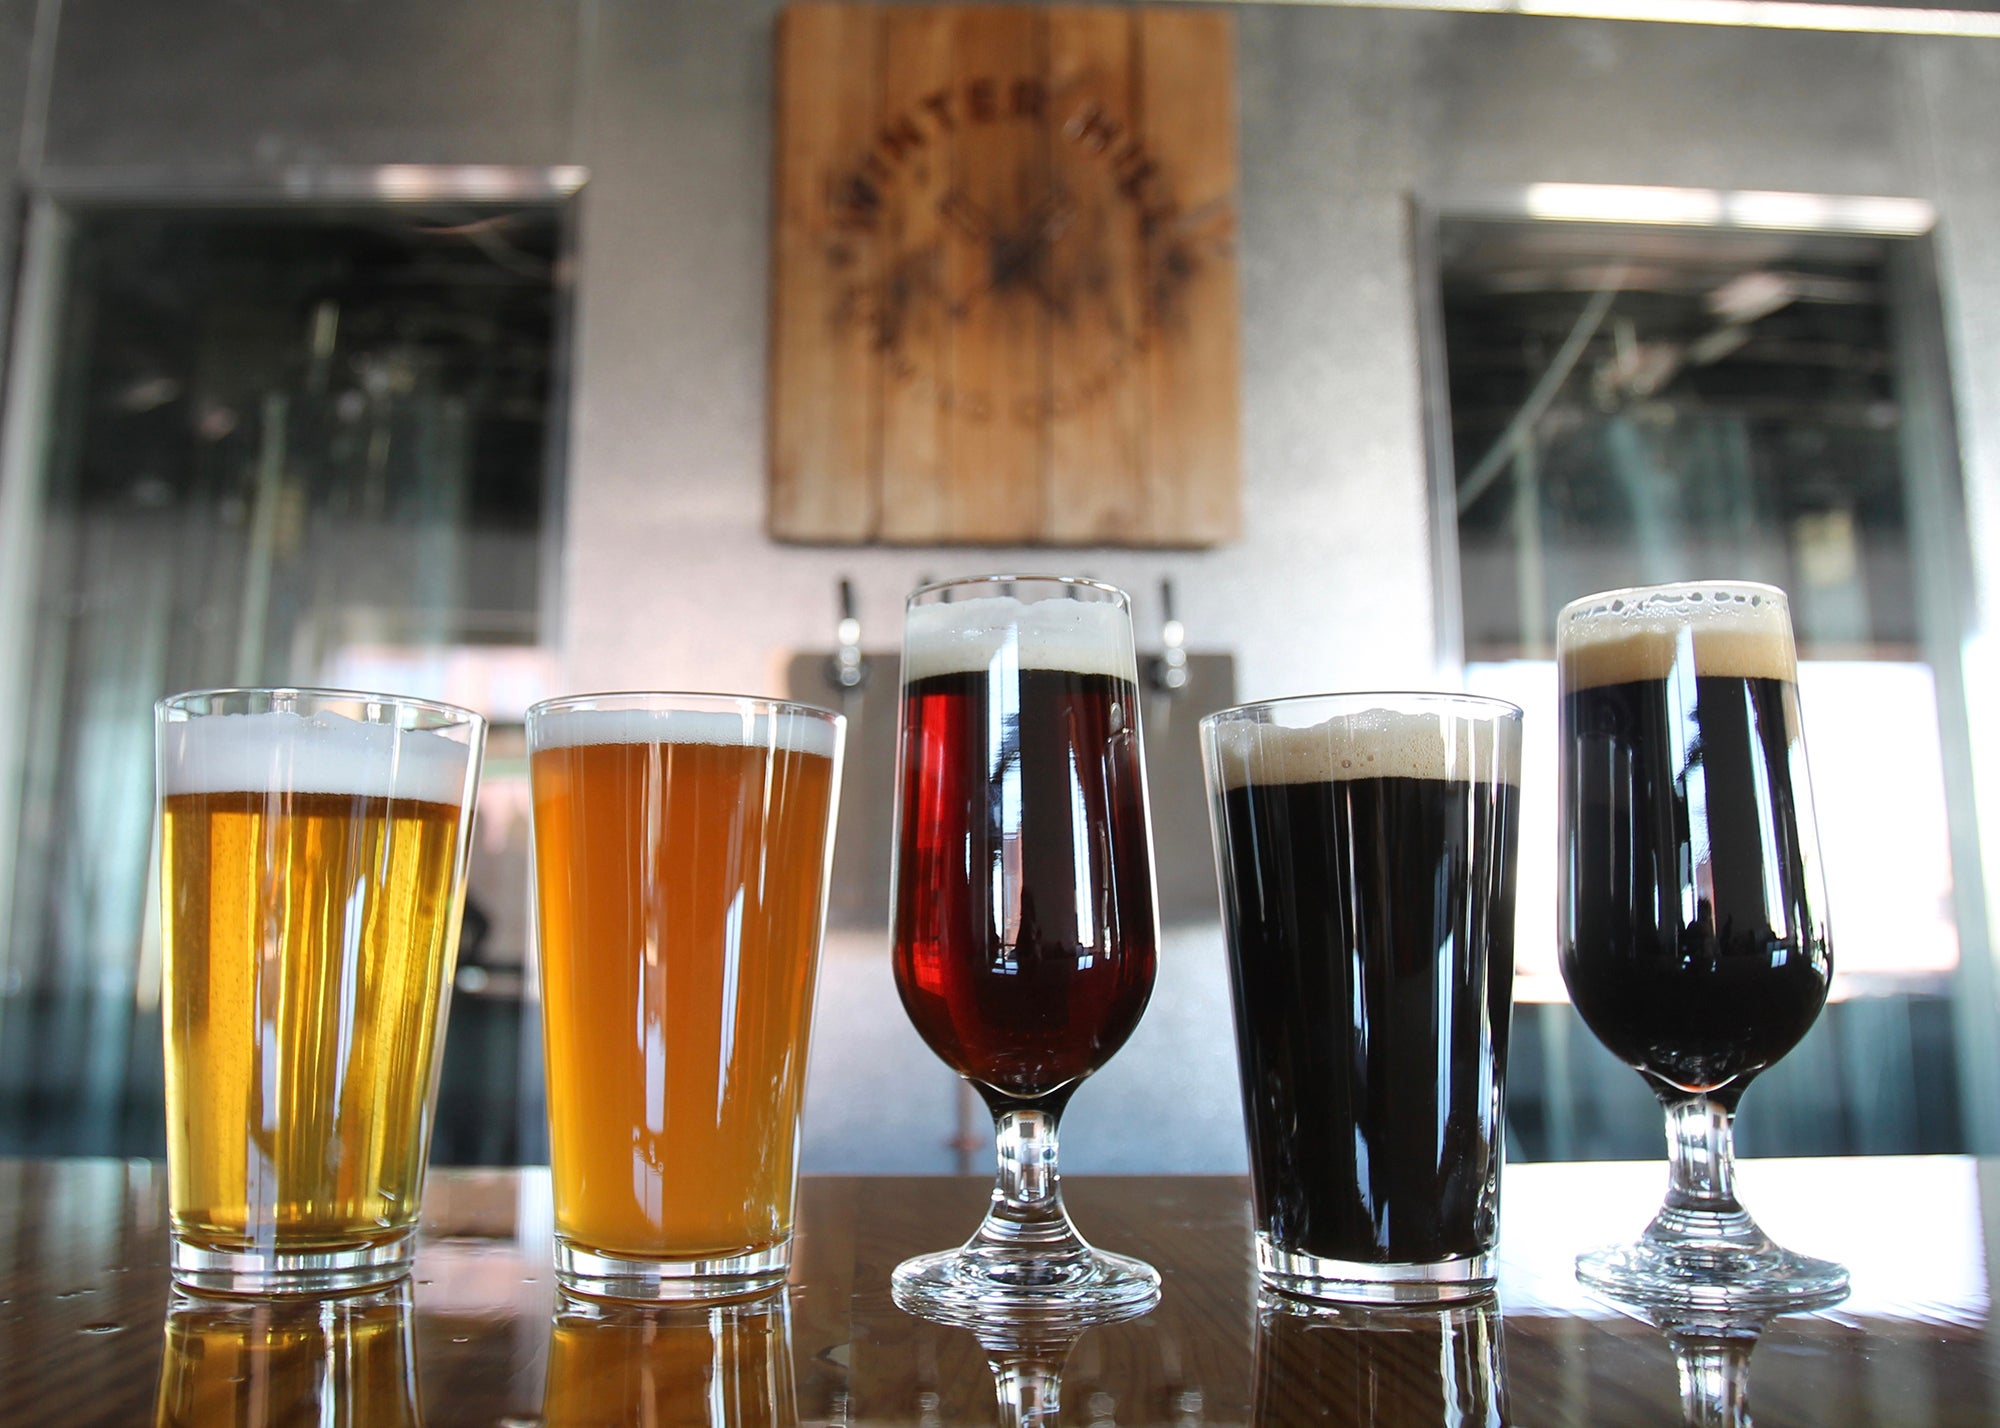 Winter Hill Brewing Company in Somerville